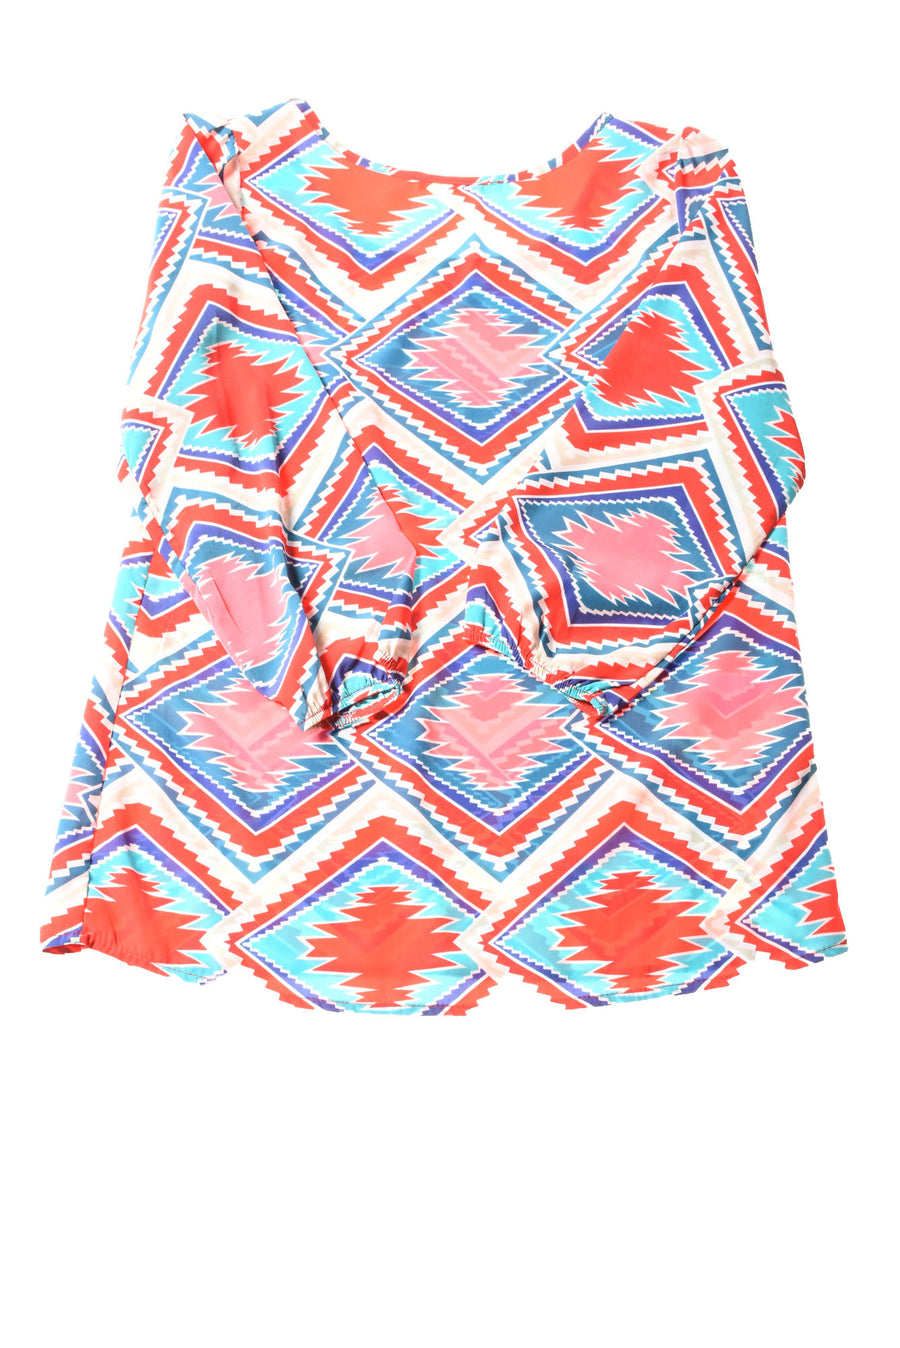 USED Miami Women's Top Small Multi-Color